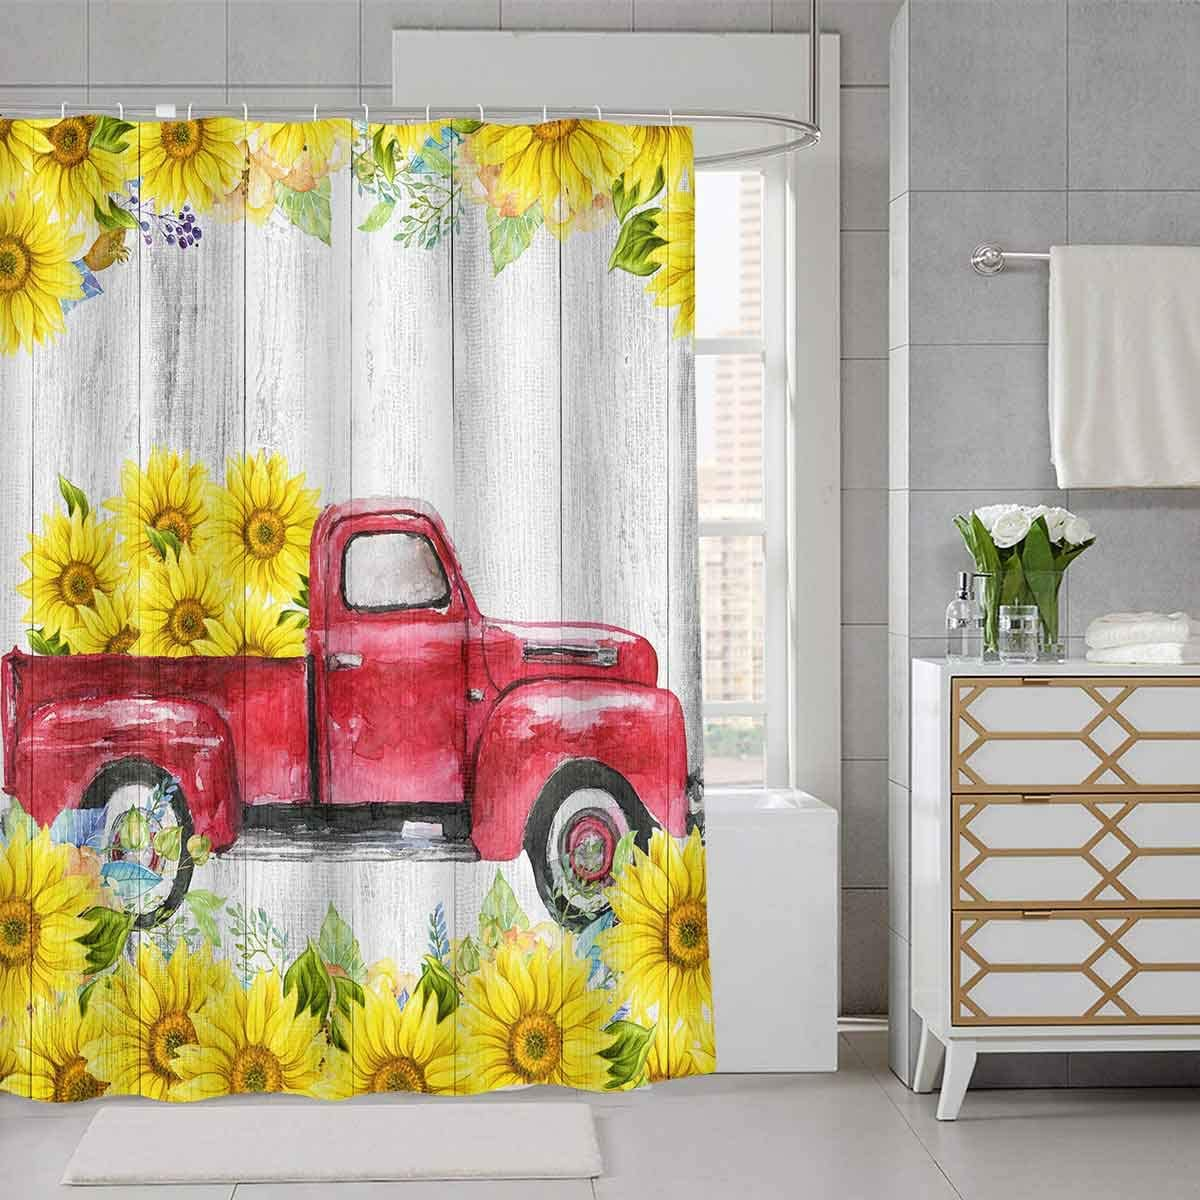 SDDSER Vintage Truck Sunflower Flower Shower Curtain Floral Wood White Striped Fresh Design of The Farmhouse Decor Bathroom Curtain for Kids, 72 x72 in Bathtub Showers Waterproof Fabric with 12 Hooks